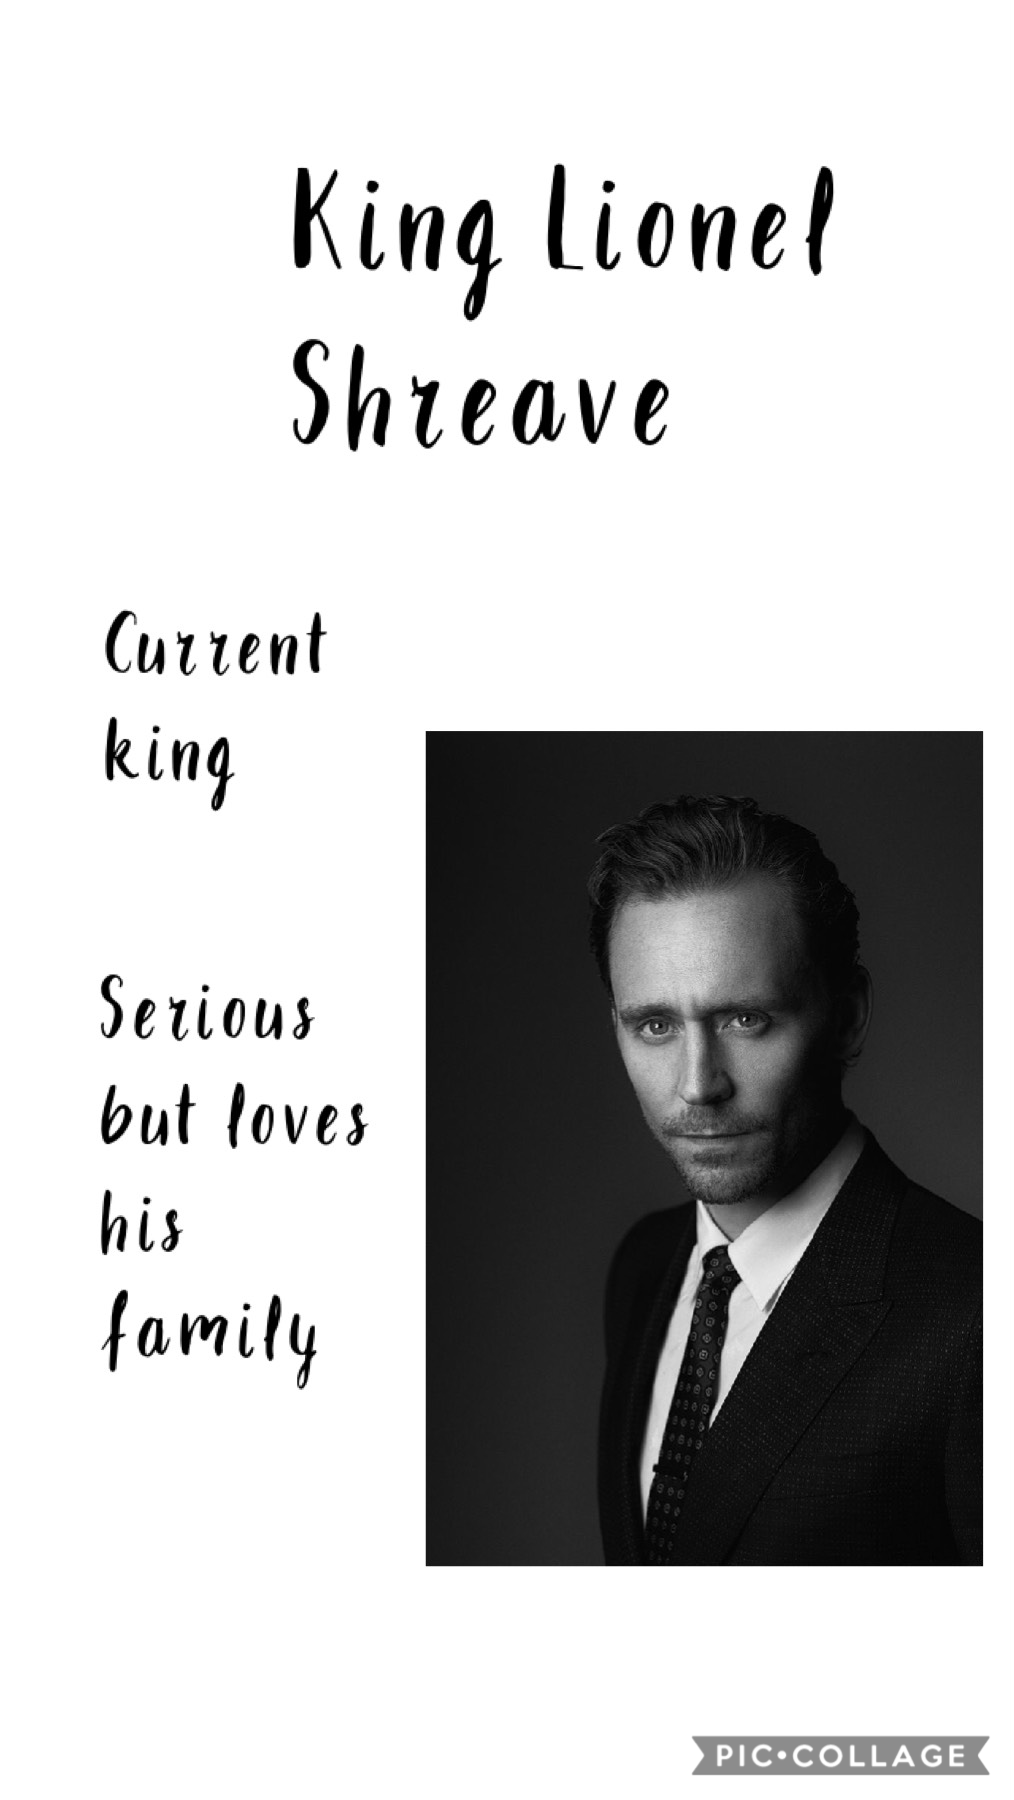 Introducing king Lionel schreave